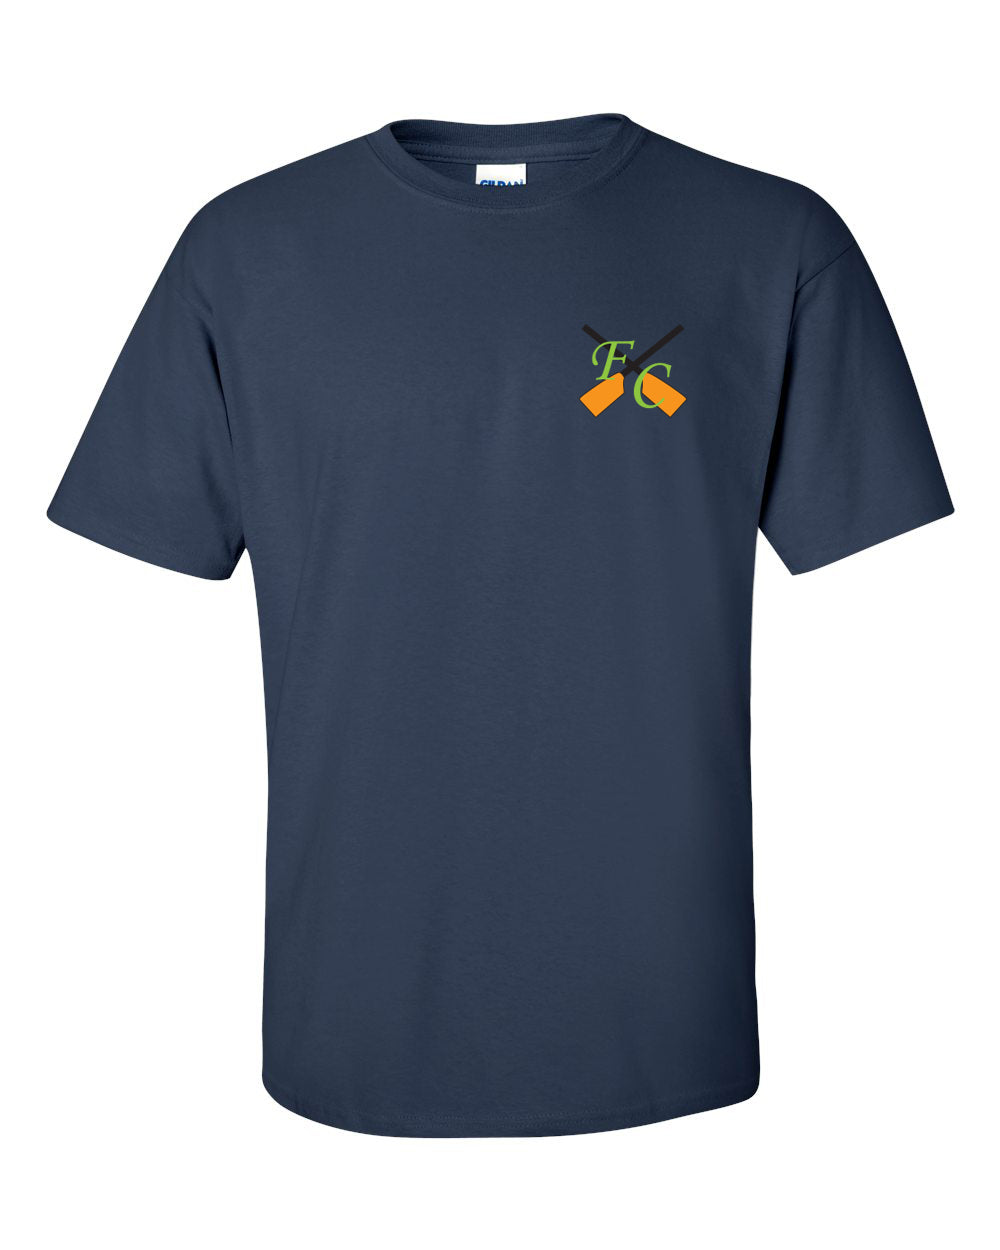 100% Cotton FCRA Men's Team Spirit T-Shirt